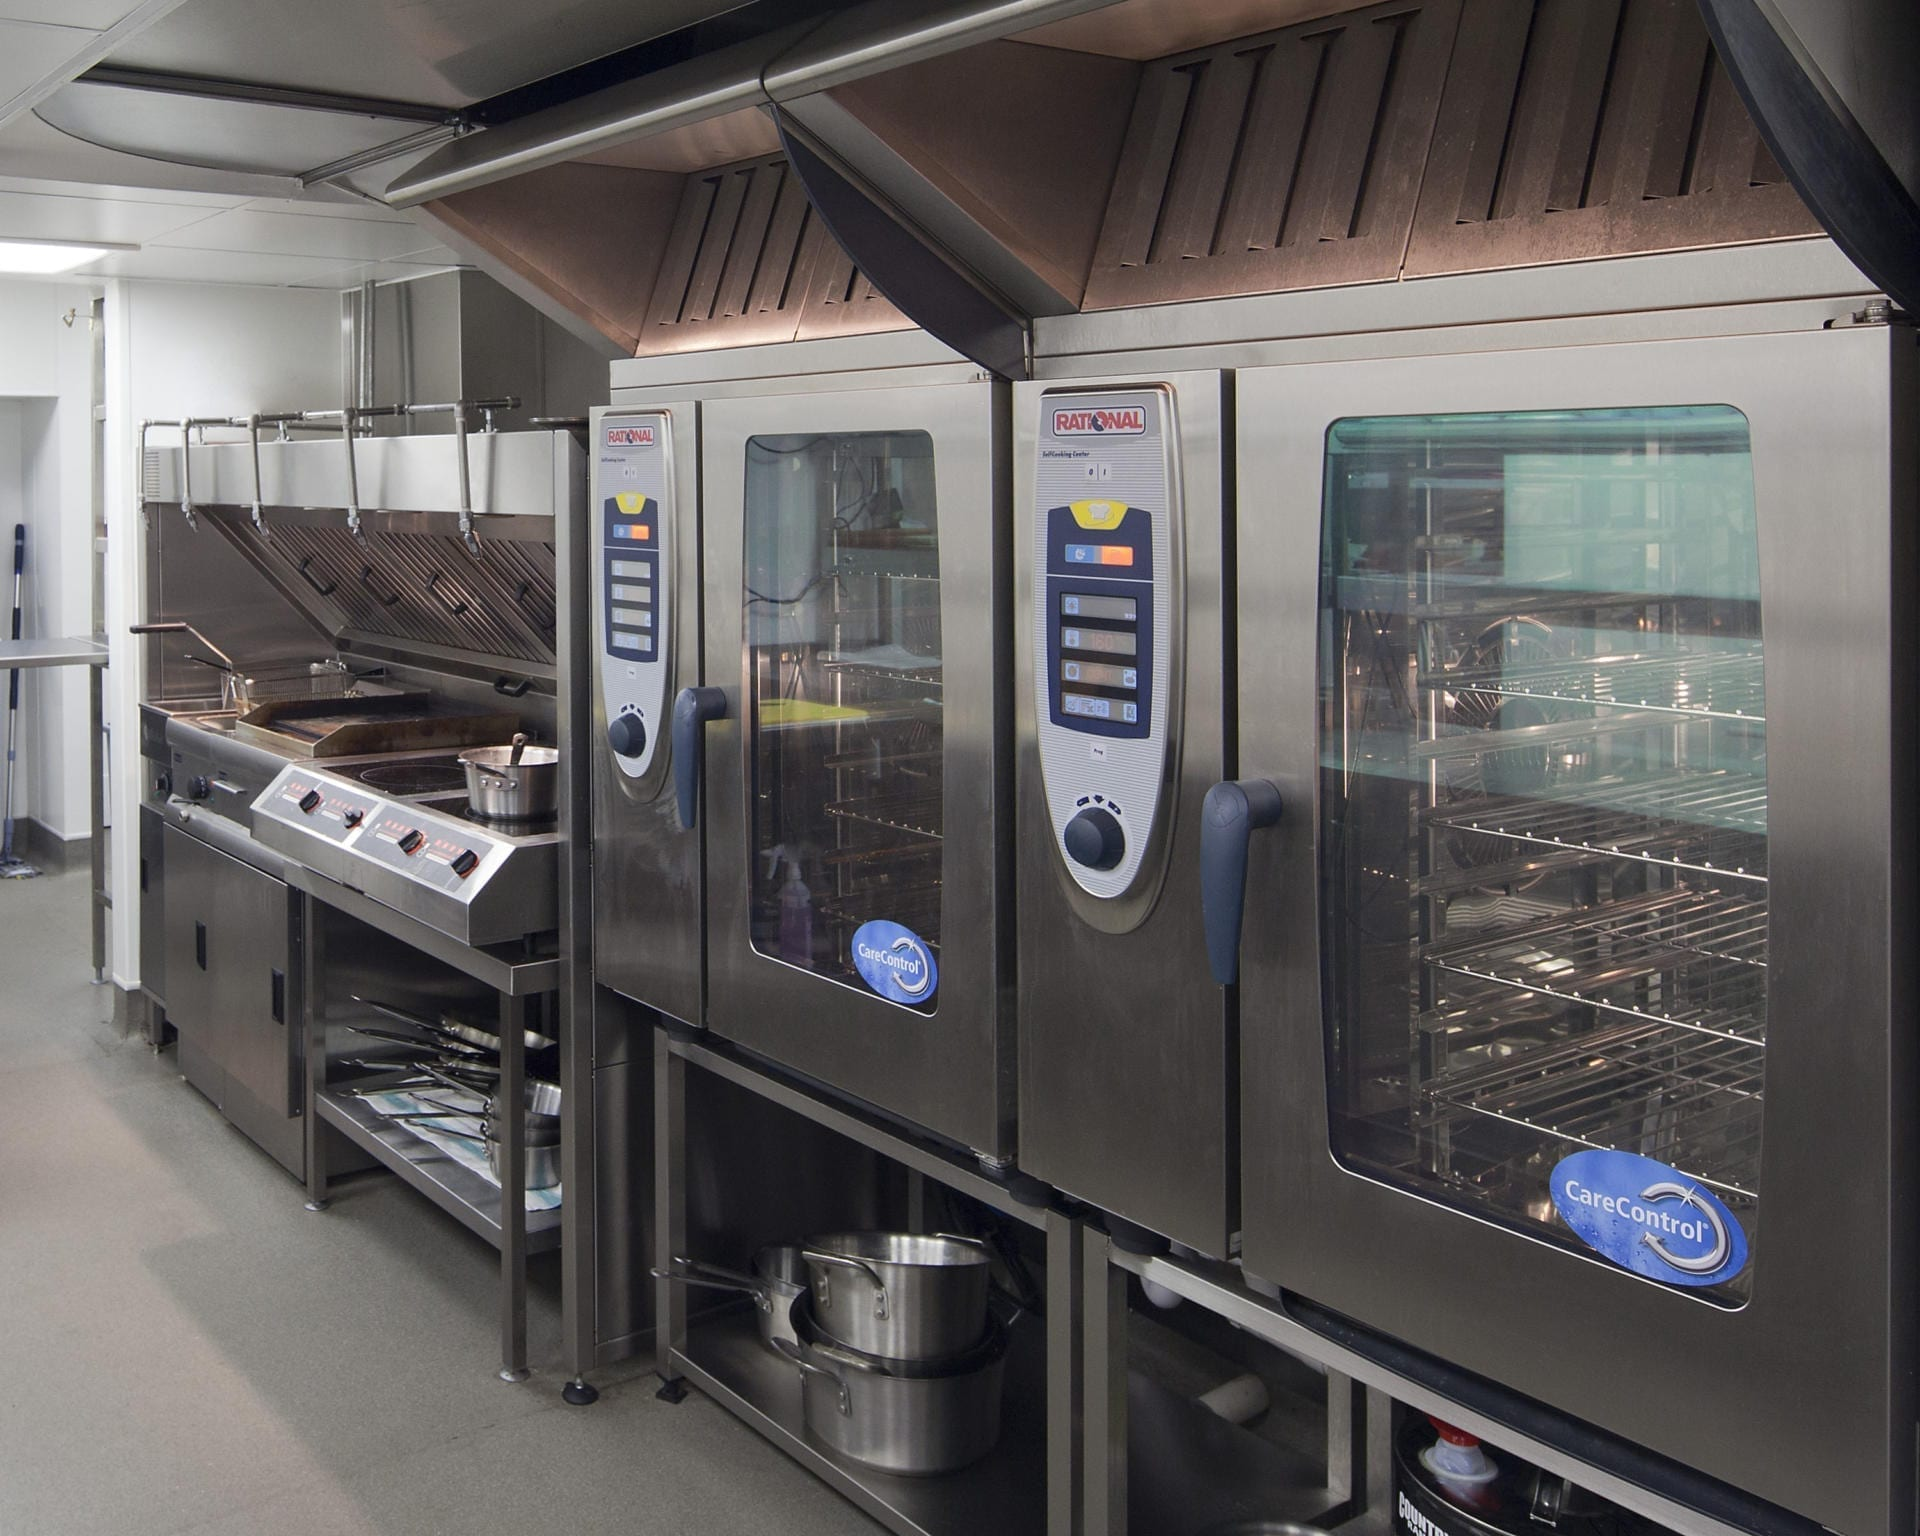 Montpellier-Chapter-Cheltenham-Restaurant-Kitchen-Front-of-house-Servery-Food-Display-Pizza-spacecatering_11